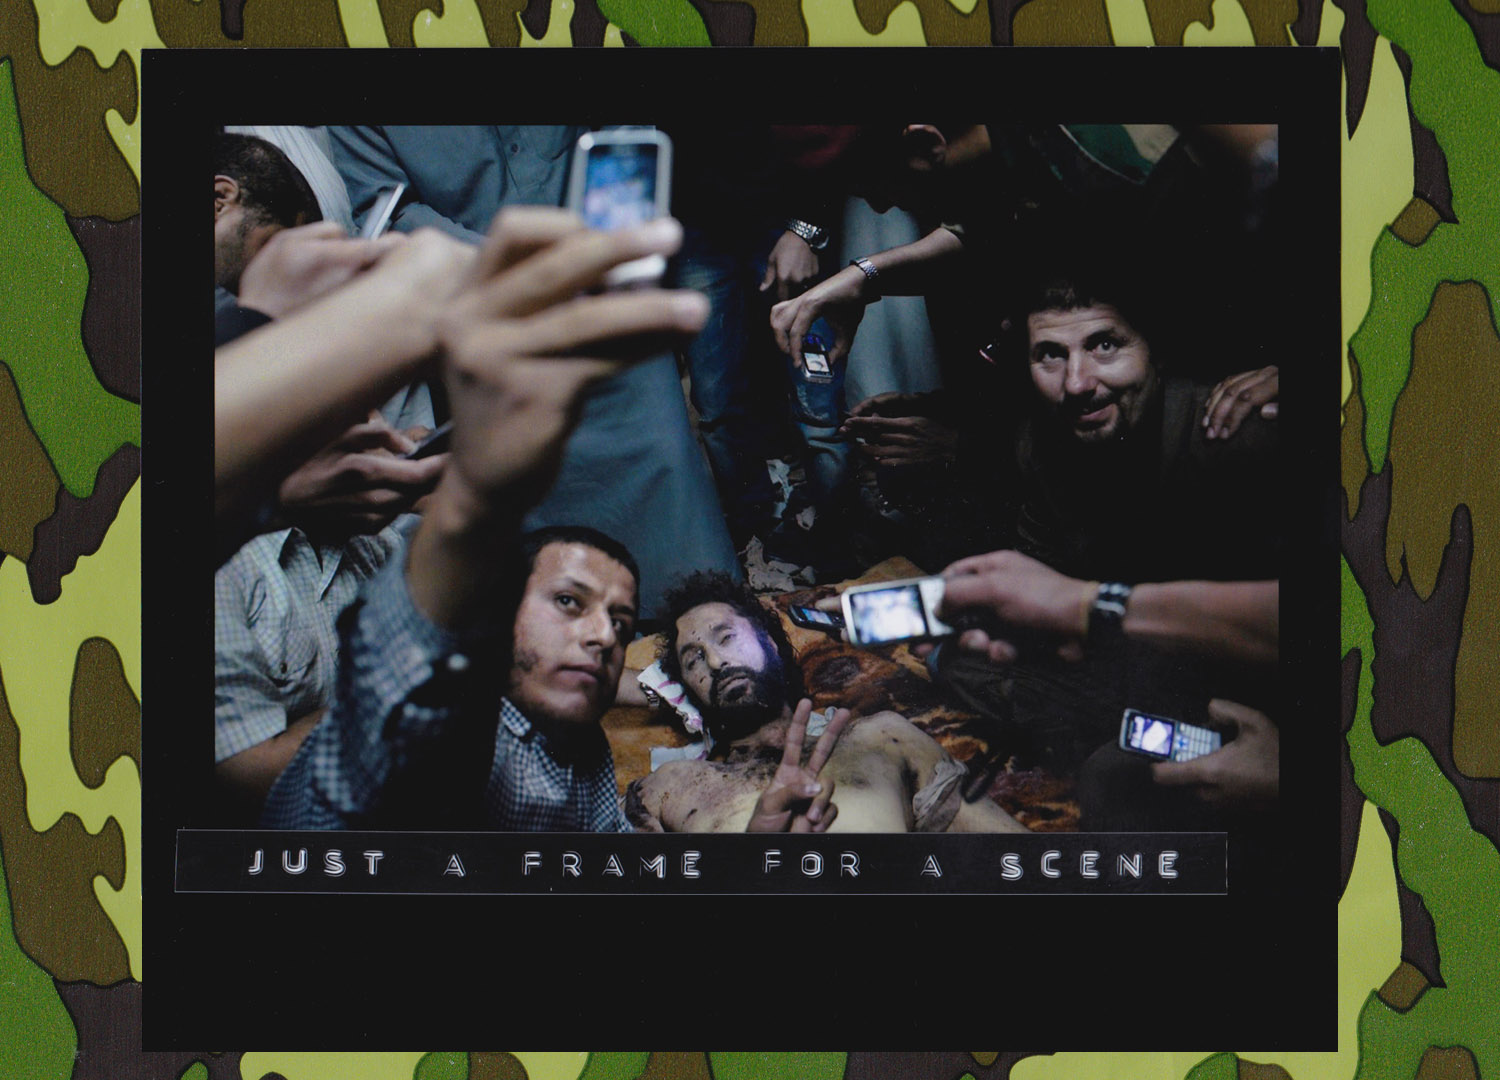 Libyans pose for pictures with the body of Muatassim el-Qaddafi, the son of Colonel Qaddafi, at a house in Misurata, Oct 19, 2011. (Photo: Mauricio Lima//The New York Times).